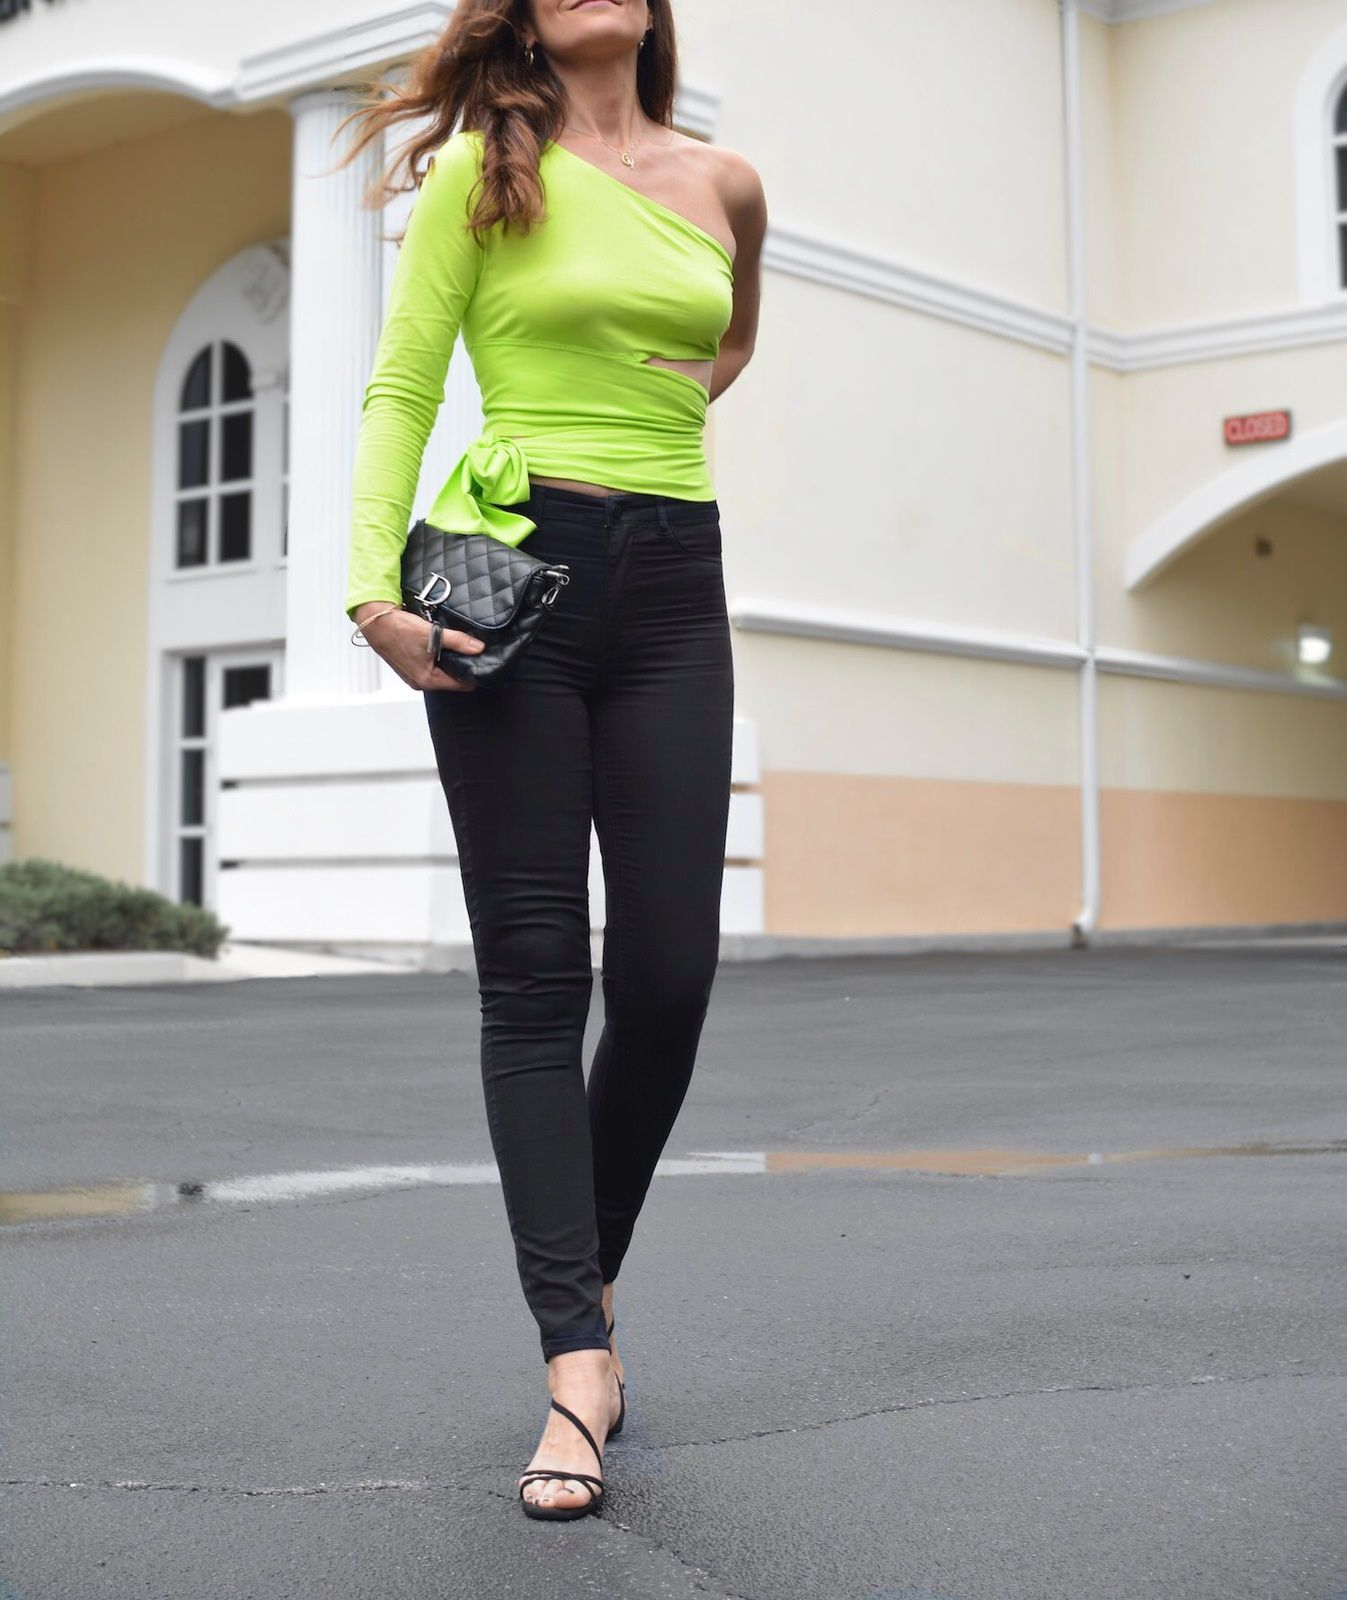 Neon trend, the glow of SS19